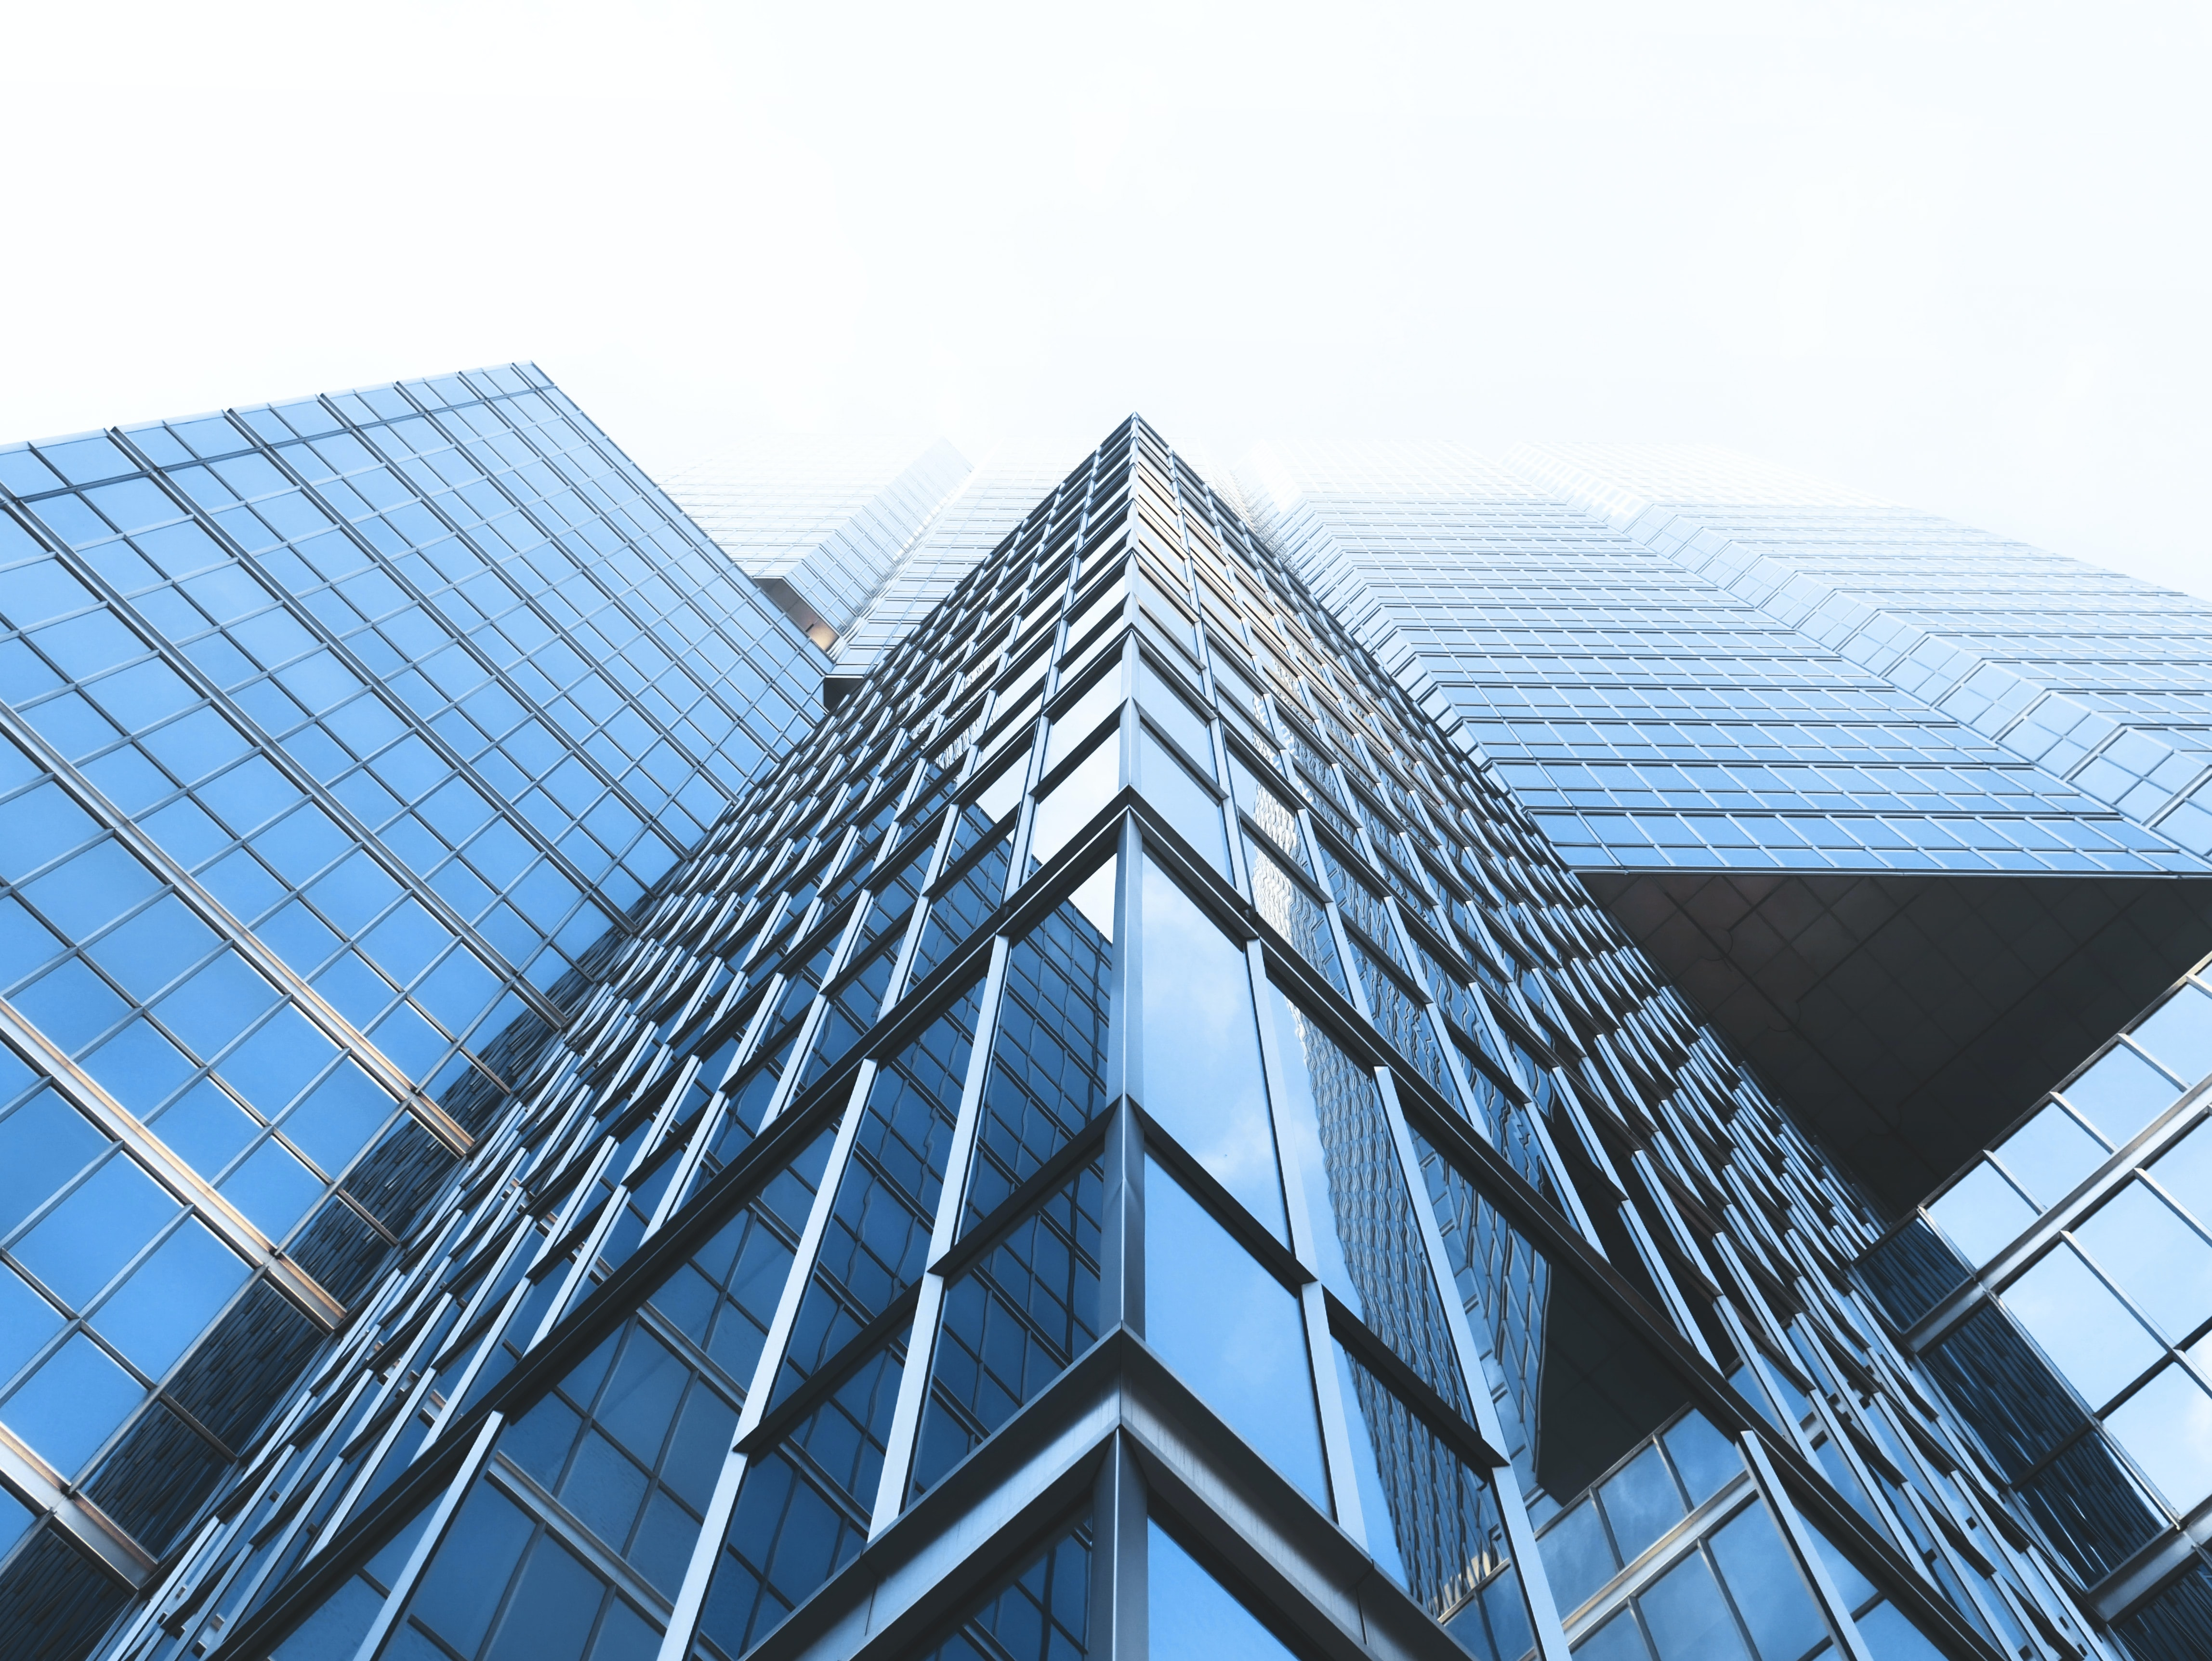 A low-angle shot of the sharp edges of a glass skyscraper shrouded in fog